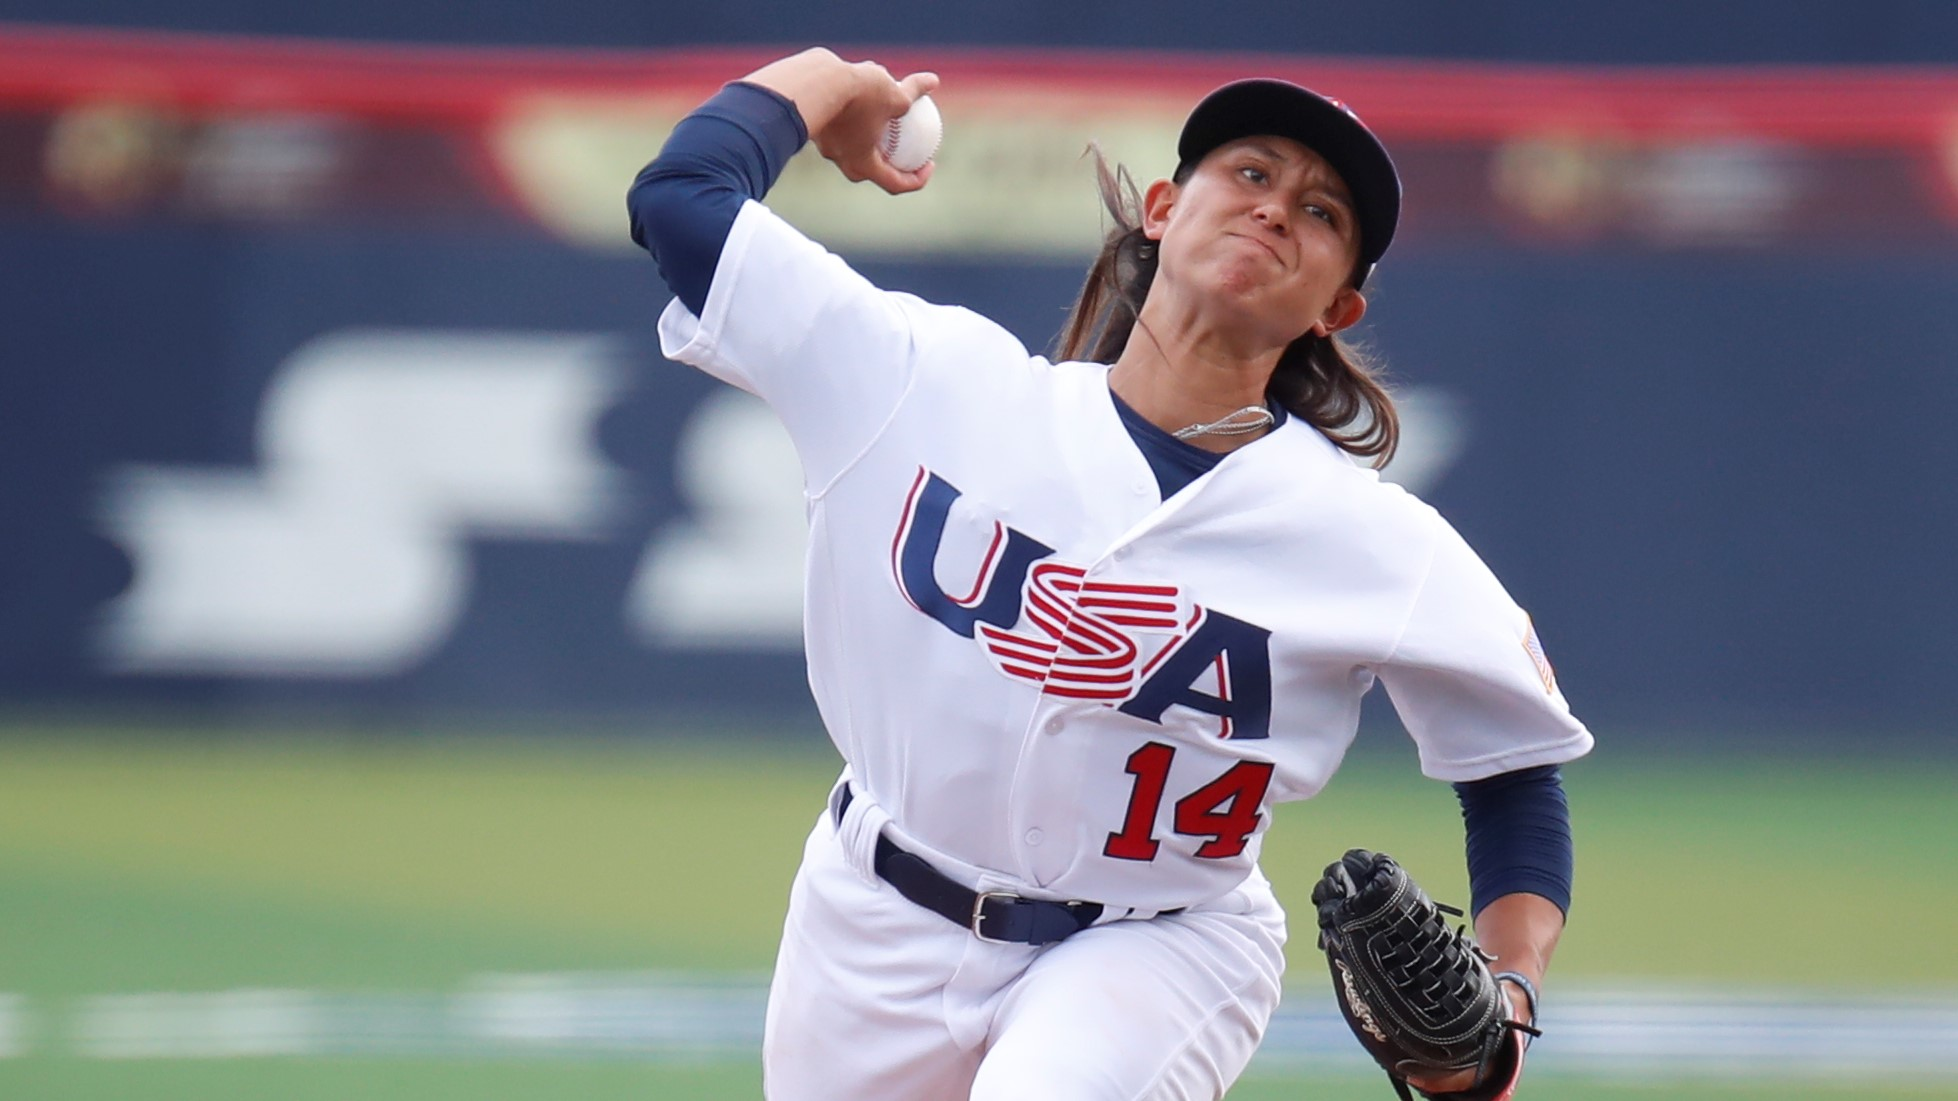 Kelsie Whitmore grabbed the win for the USA